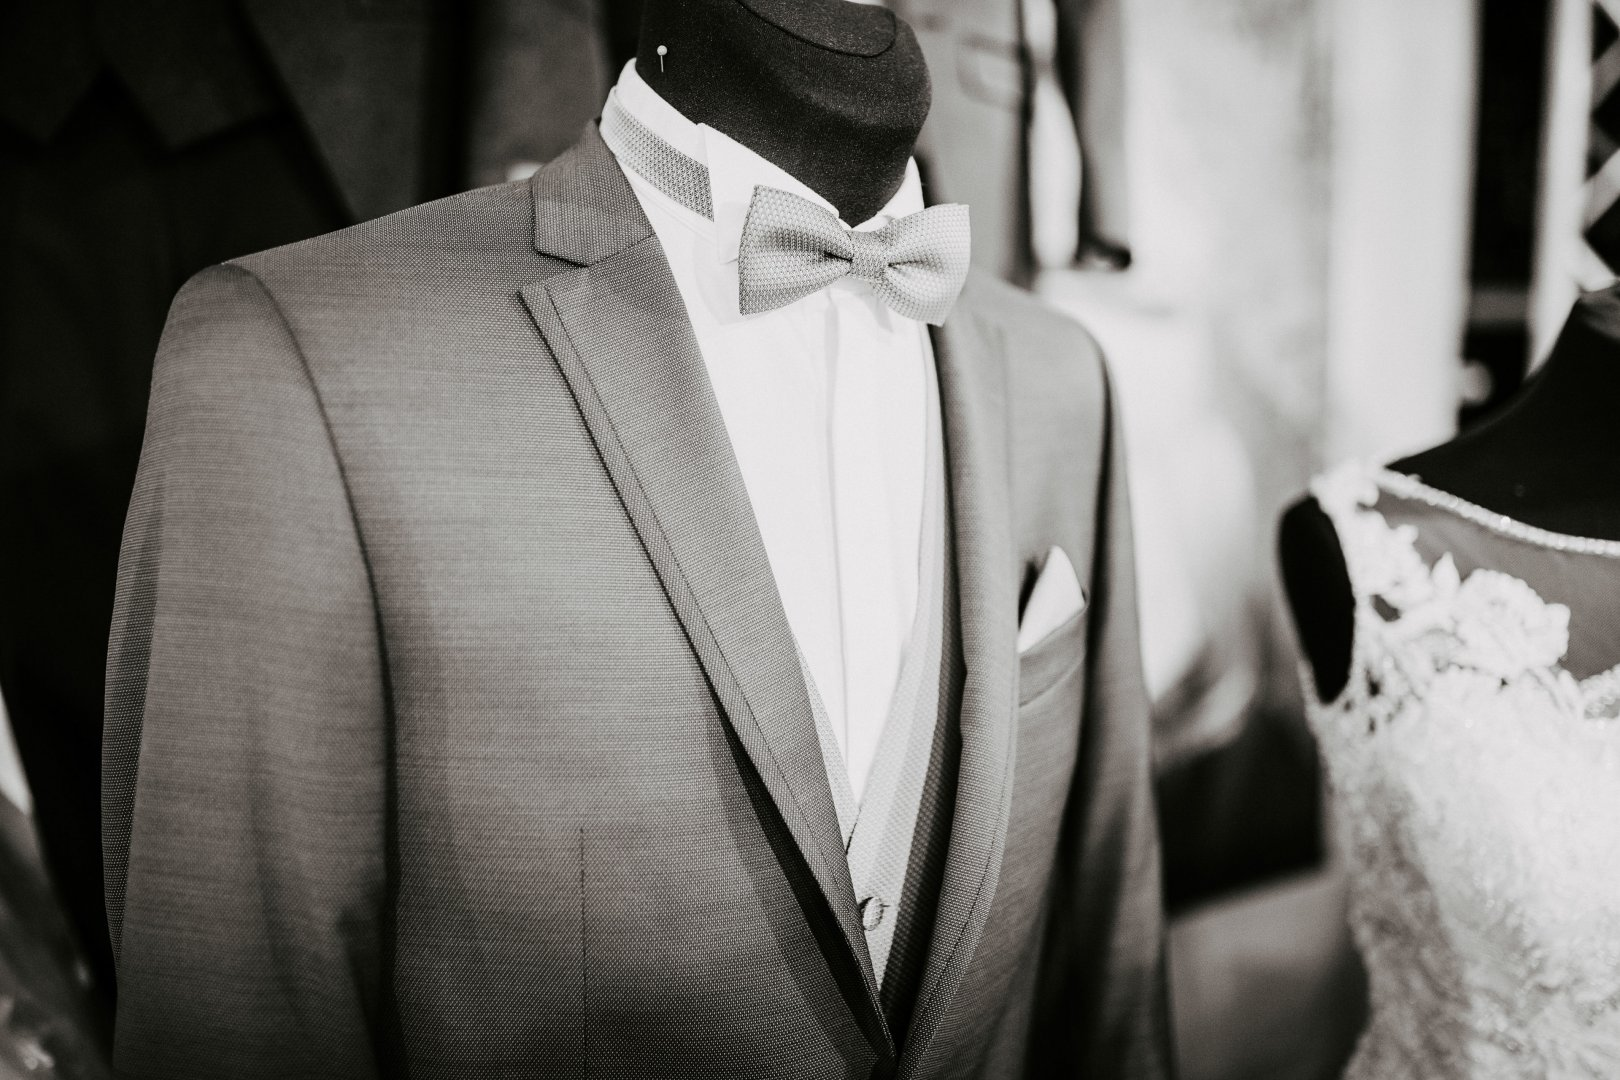 Suit White Photograph Formal wear Tuxedo Gentleman Male Black-and-white Monochrome photography Groom Monochrome Dress Tie Photography Wedding Outerwear Blazer Wedding dress Ceremony Groom Fashion accessory Style White-collar worker